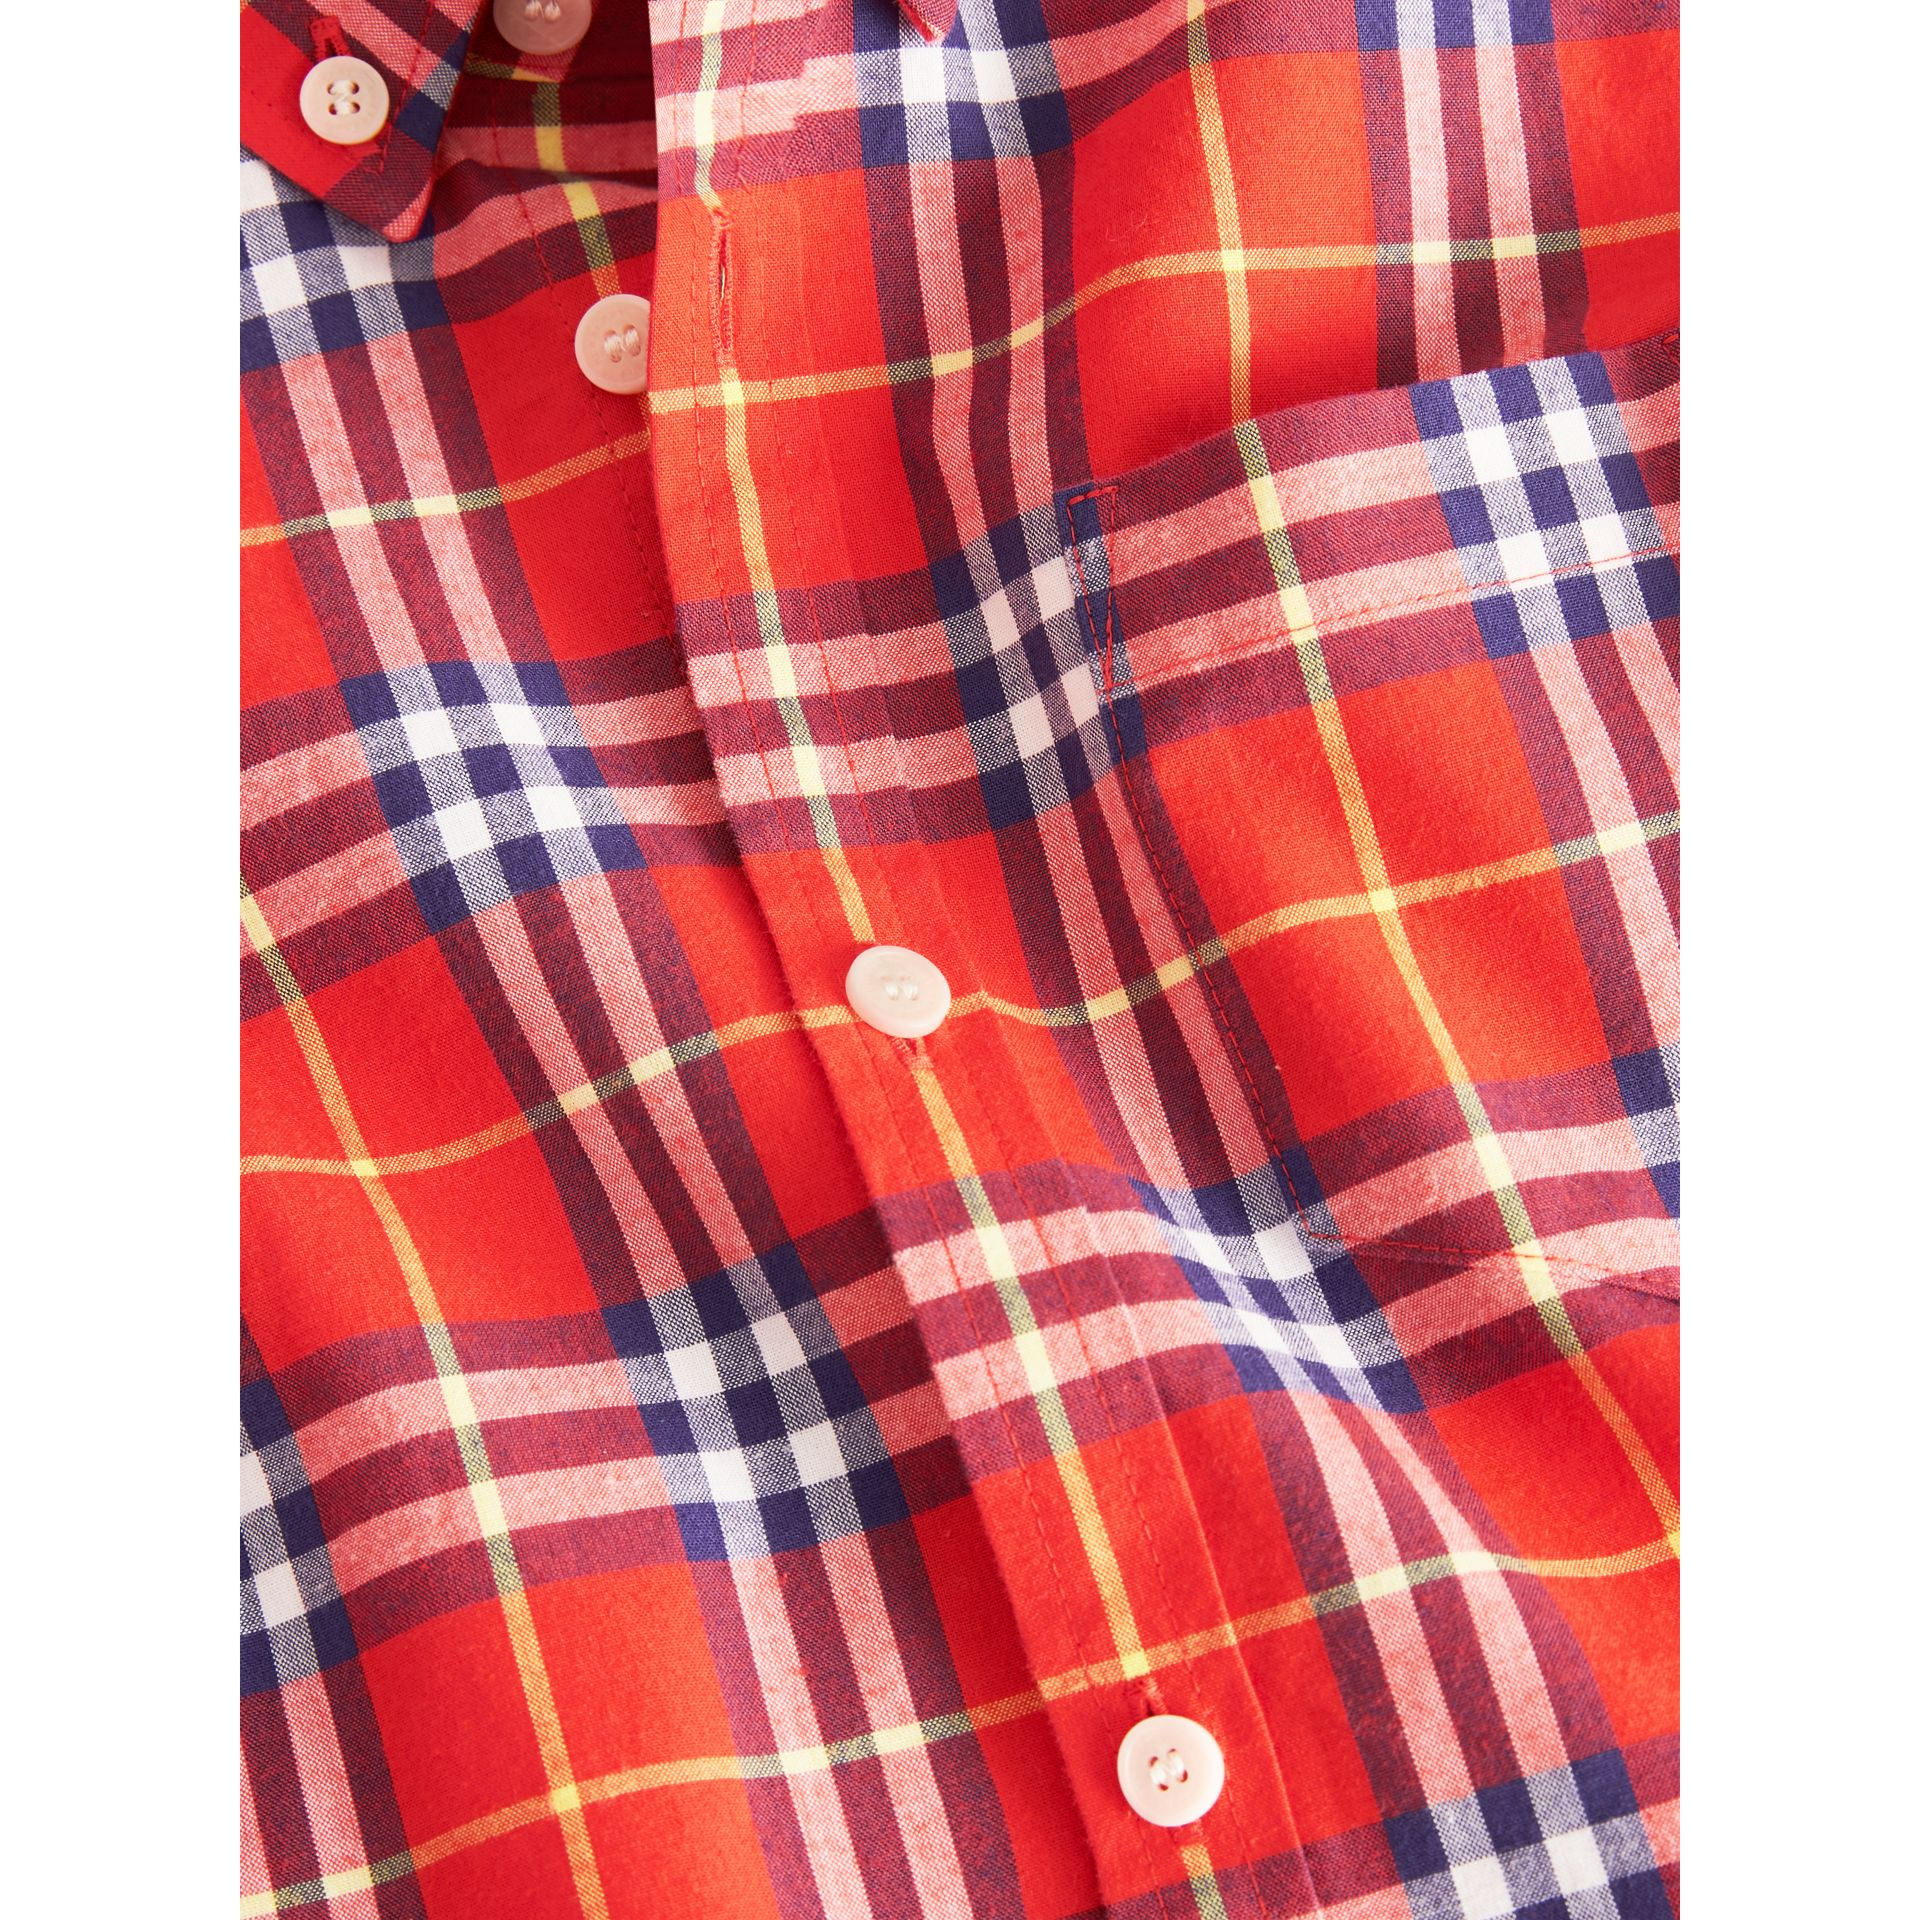 Button-down Collar Check Flannel Shirt in Orange Red | Burberry Australia - gallery image 1